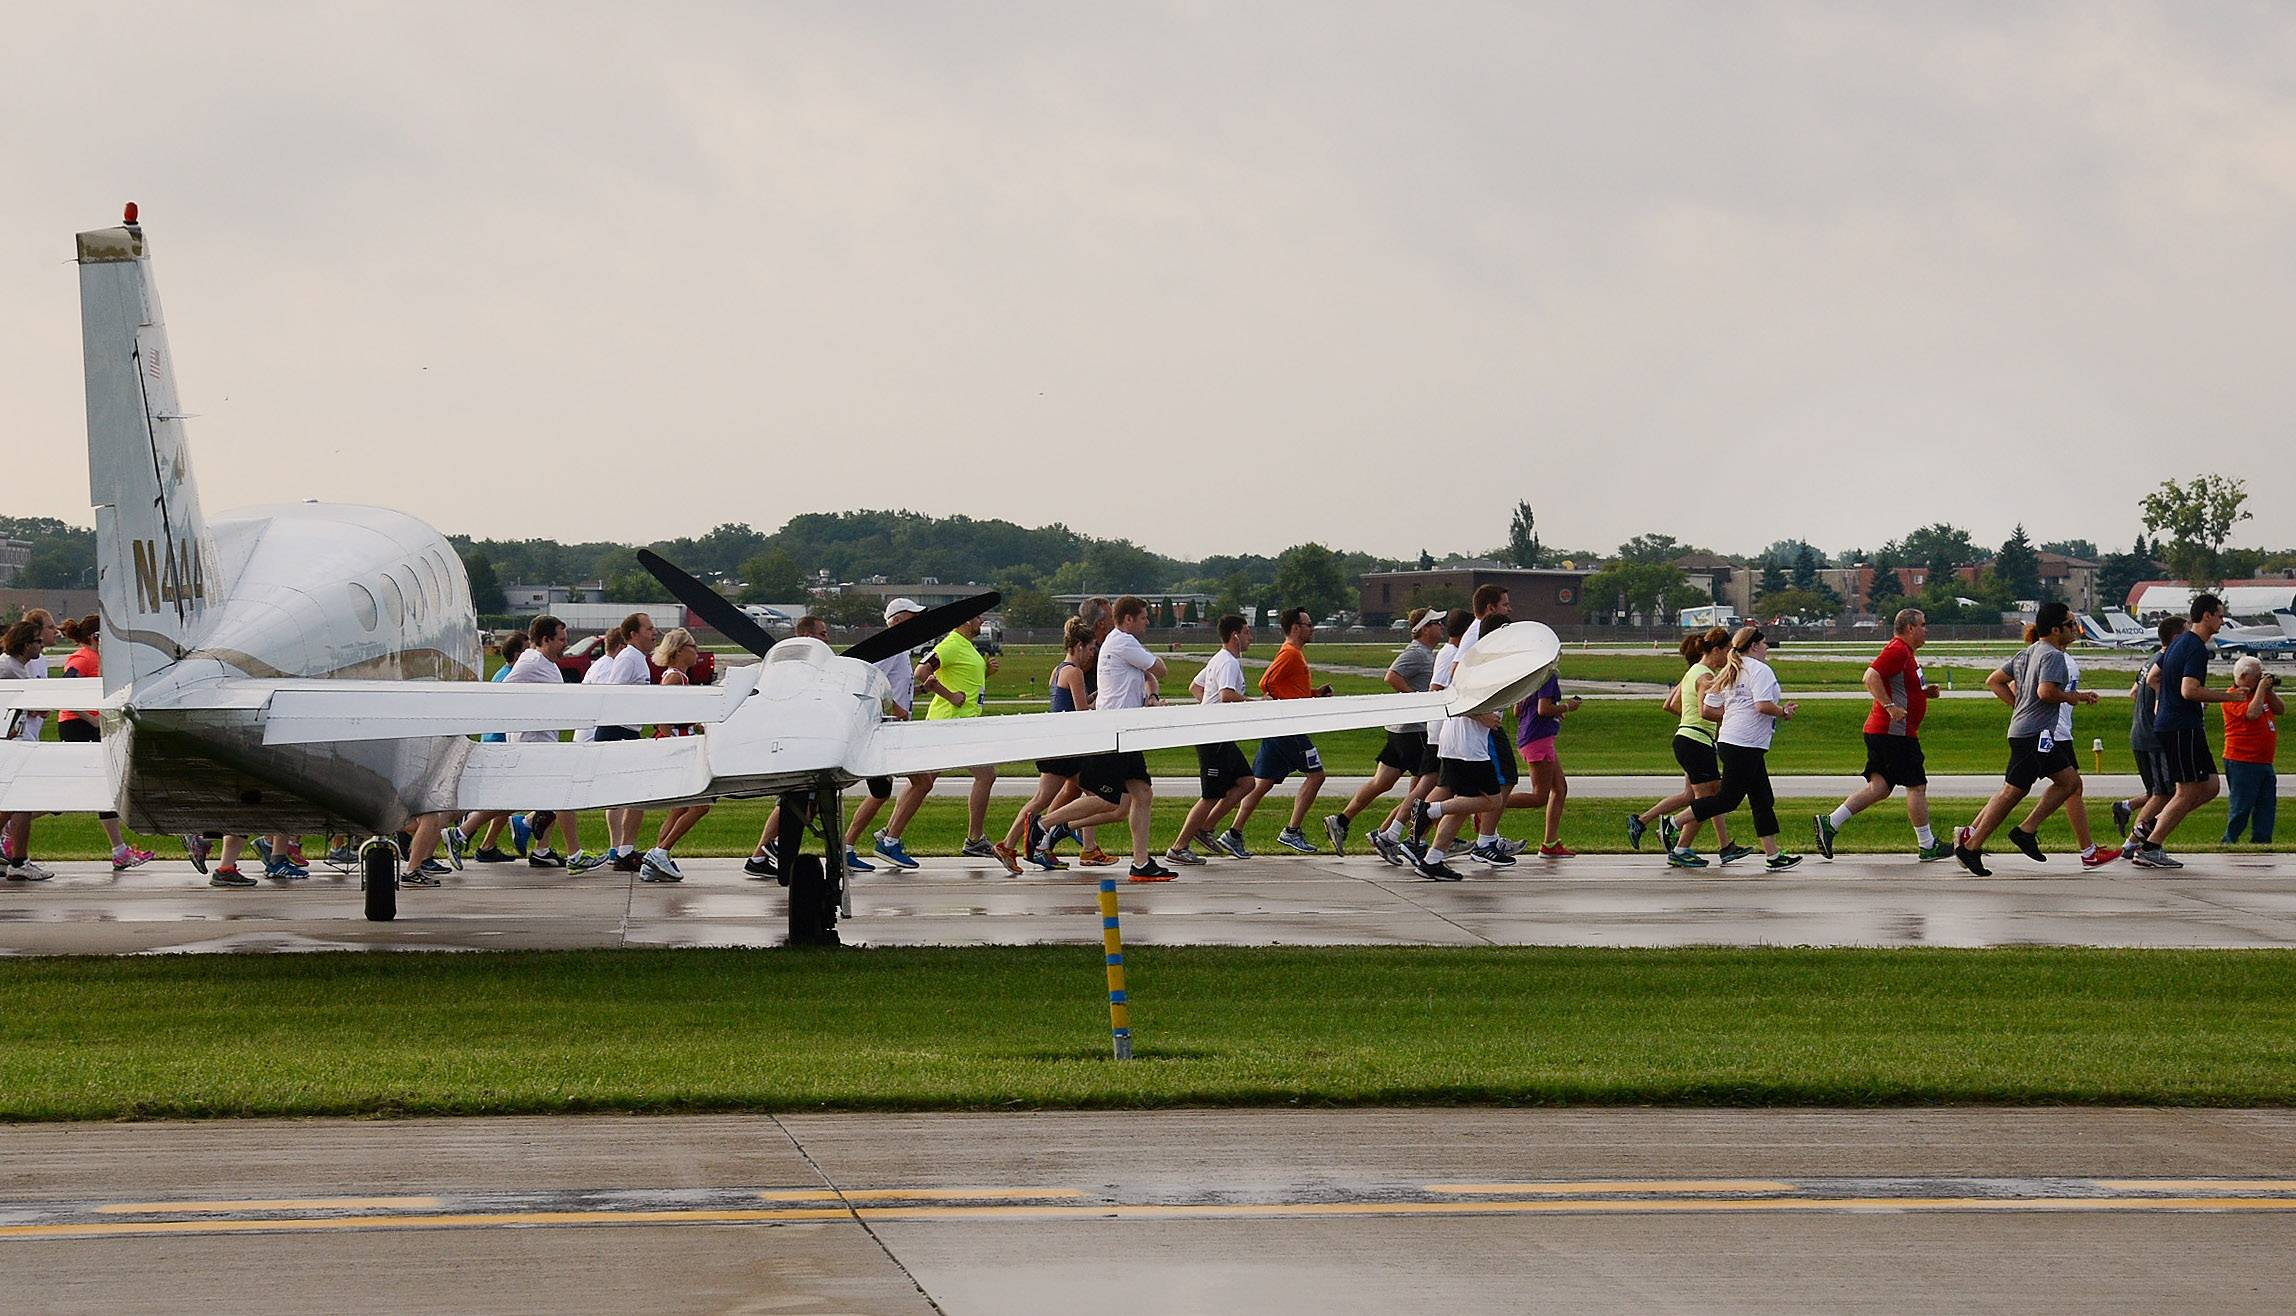 Runners take off down the runway for the inaugural Run the Runway 5K Run and 1 Mile Walk Saturday at Chicago Executive Airport in Wheeling.